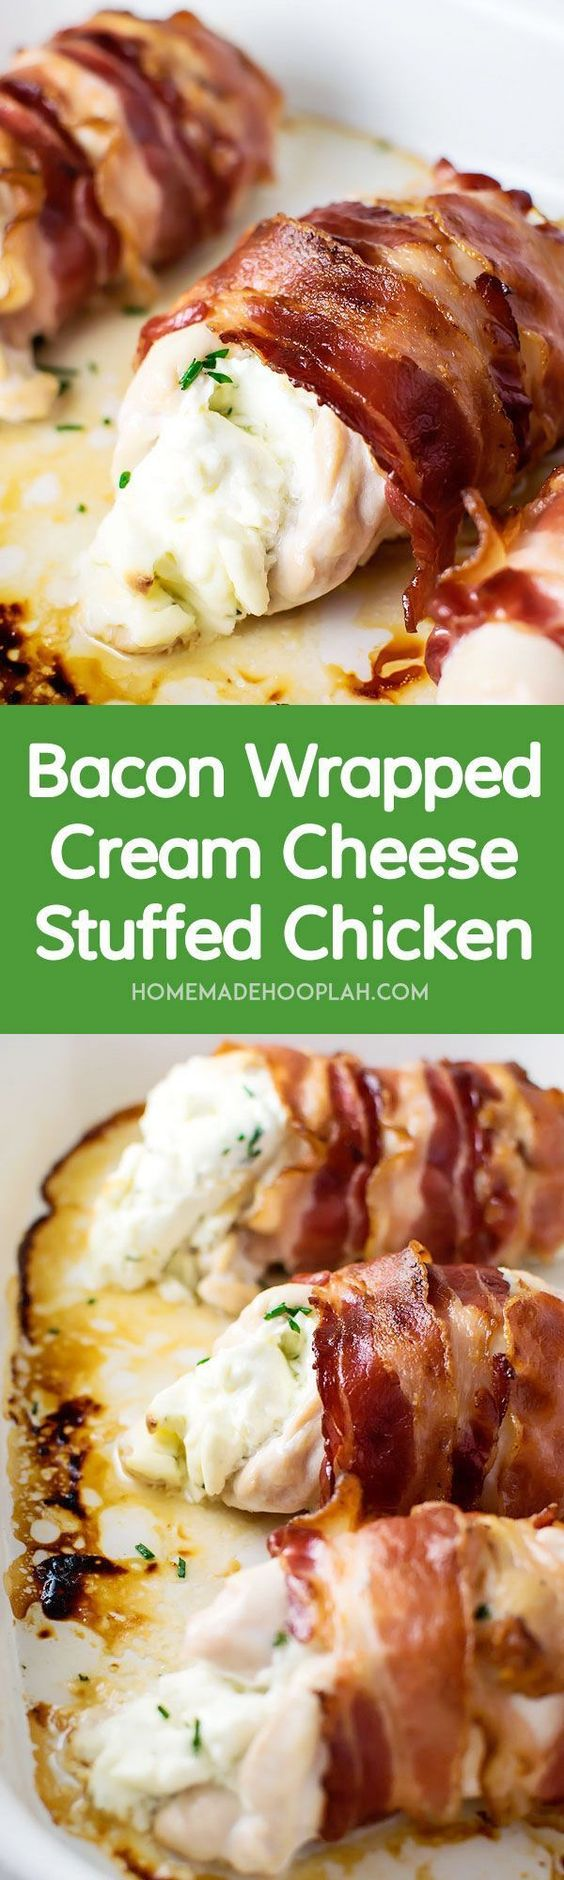 Bacon Wrapped Cream Cheese Stuffed Chicken - Tender chicken breast stuffed with cream cheese and chives wrapped tightly within crispy bacon. Yummy.......